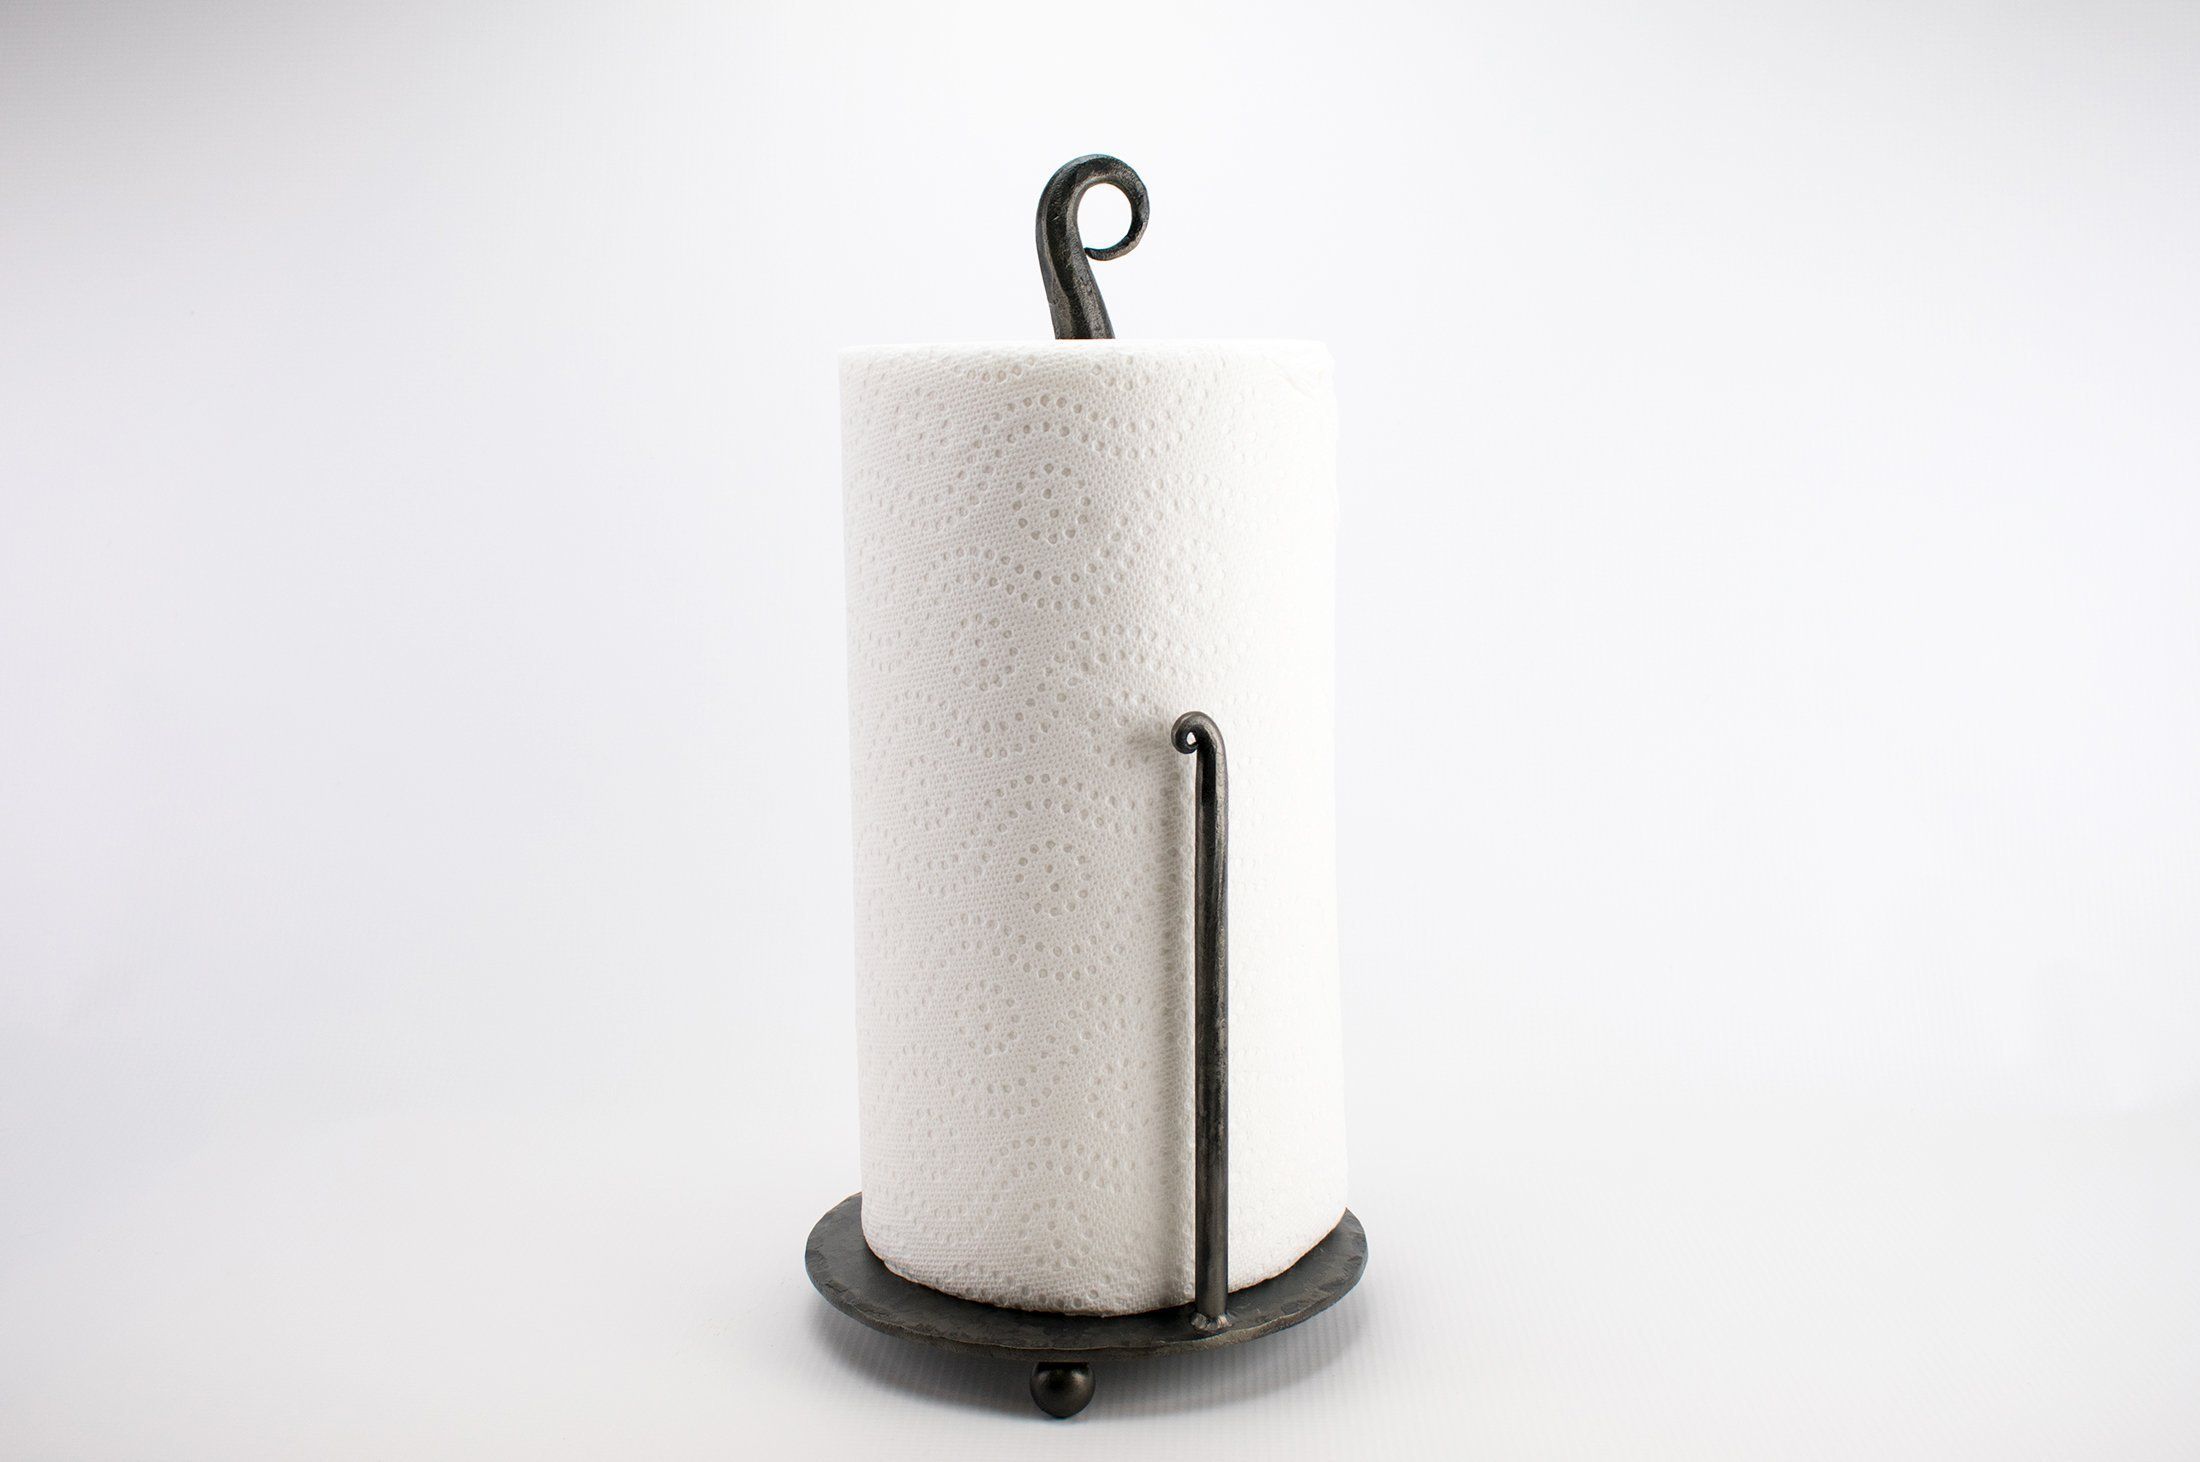 Hand Forged Iron Counter Top Paper Towel Holder - Multiple Finishes by Brown Dog Forge & Co.